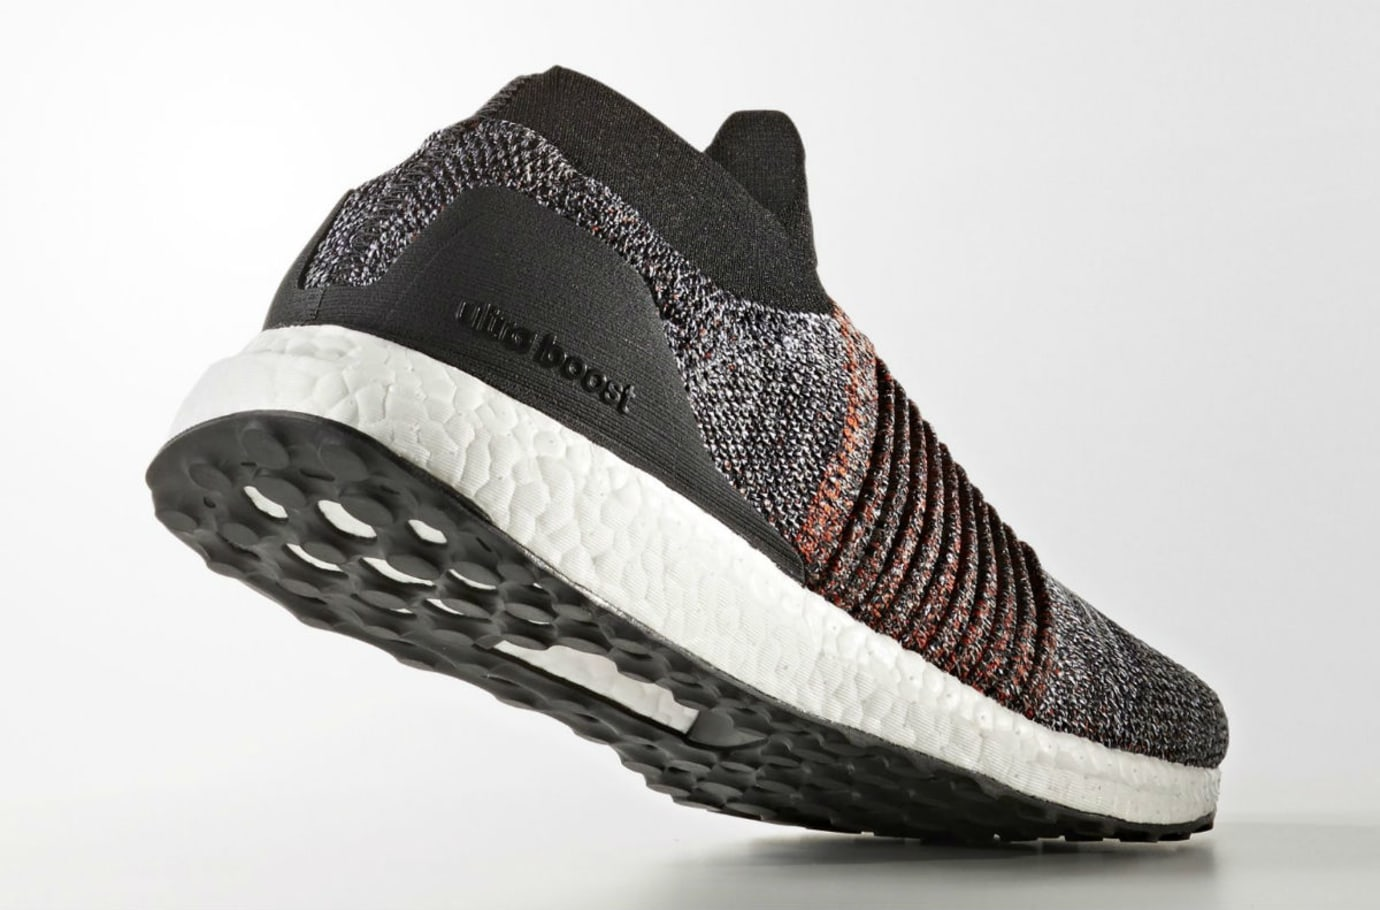 Adidas Ultra Boost Laceless Black White Orange Release Date Lateral S80769